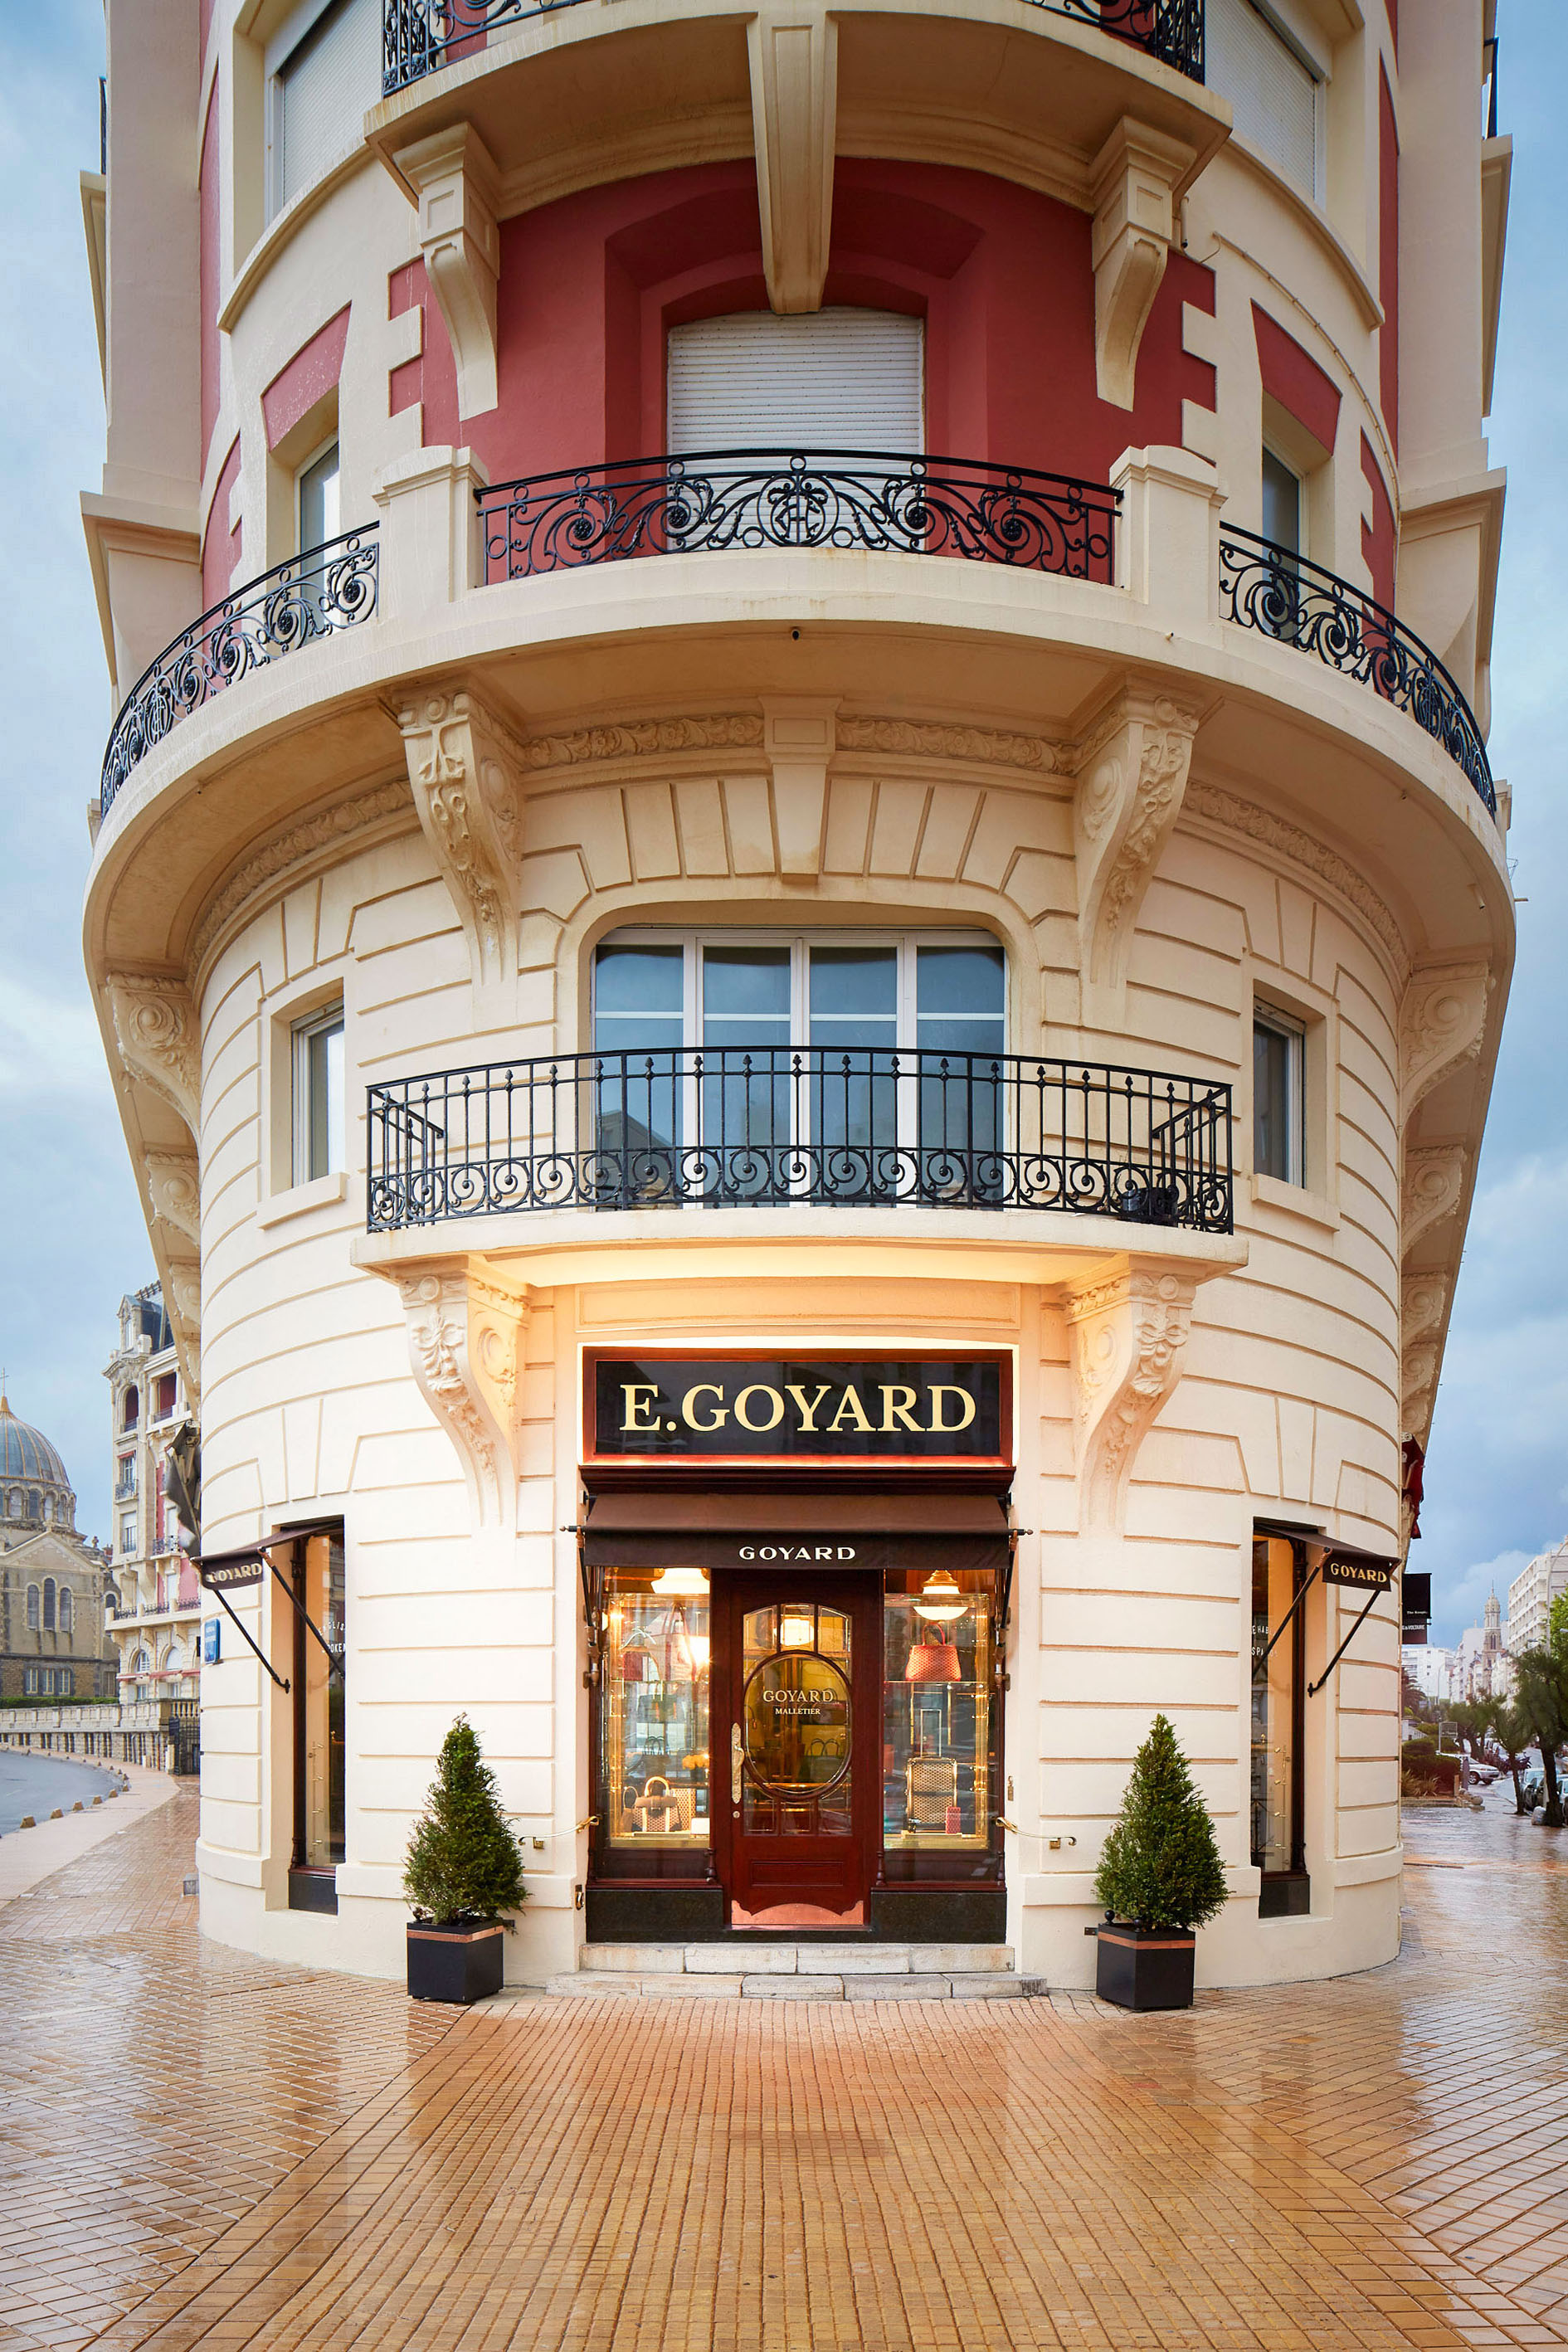 Boutique Goyard - Biarritz - France.